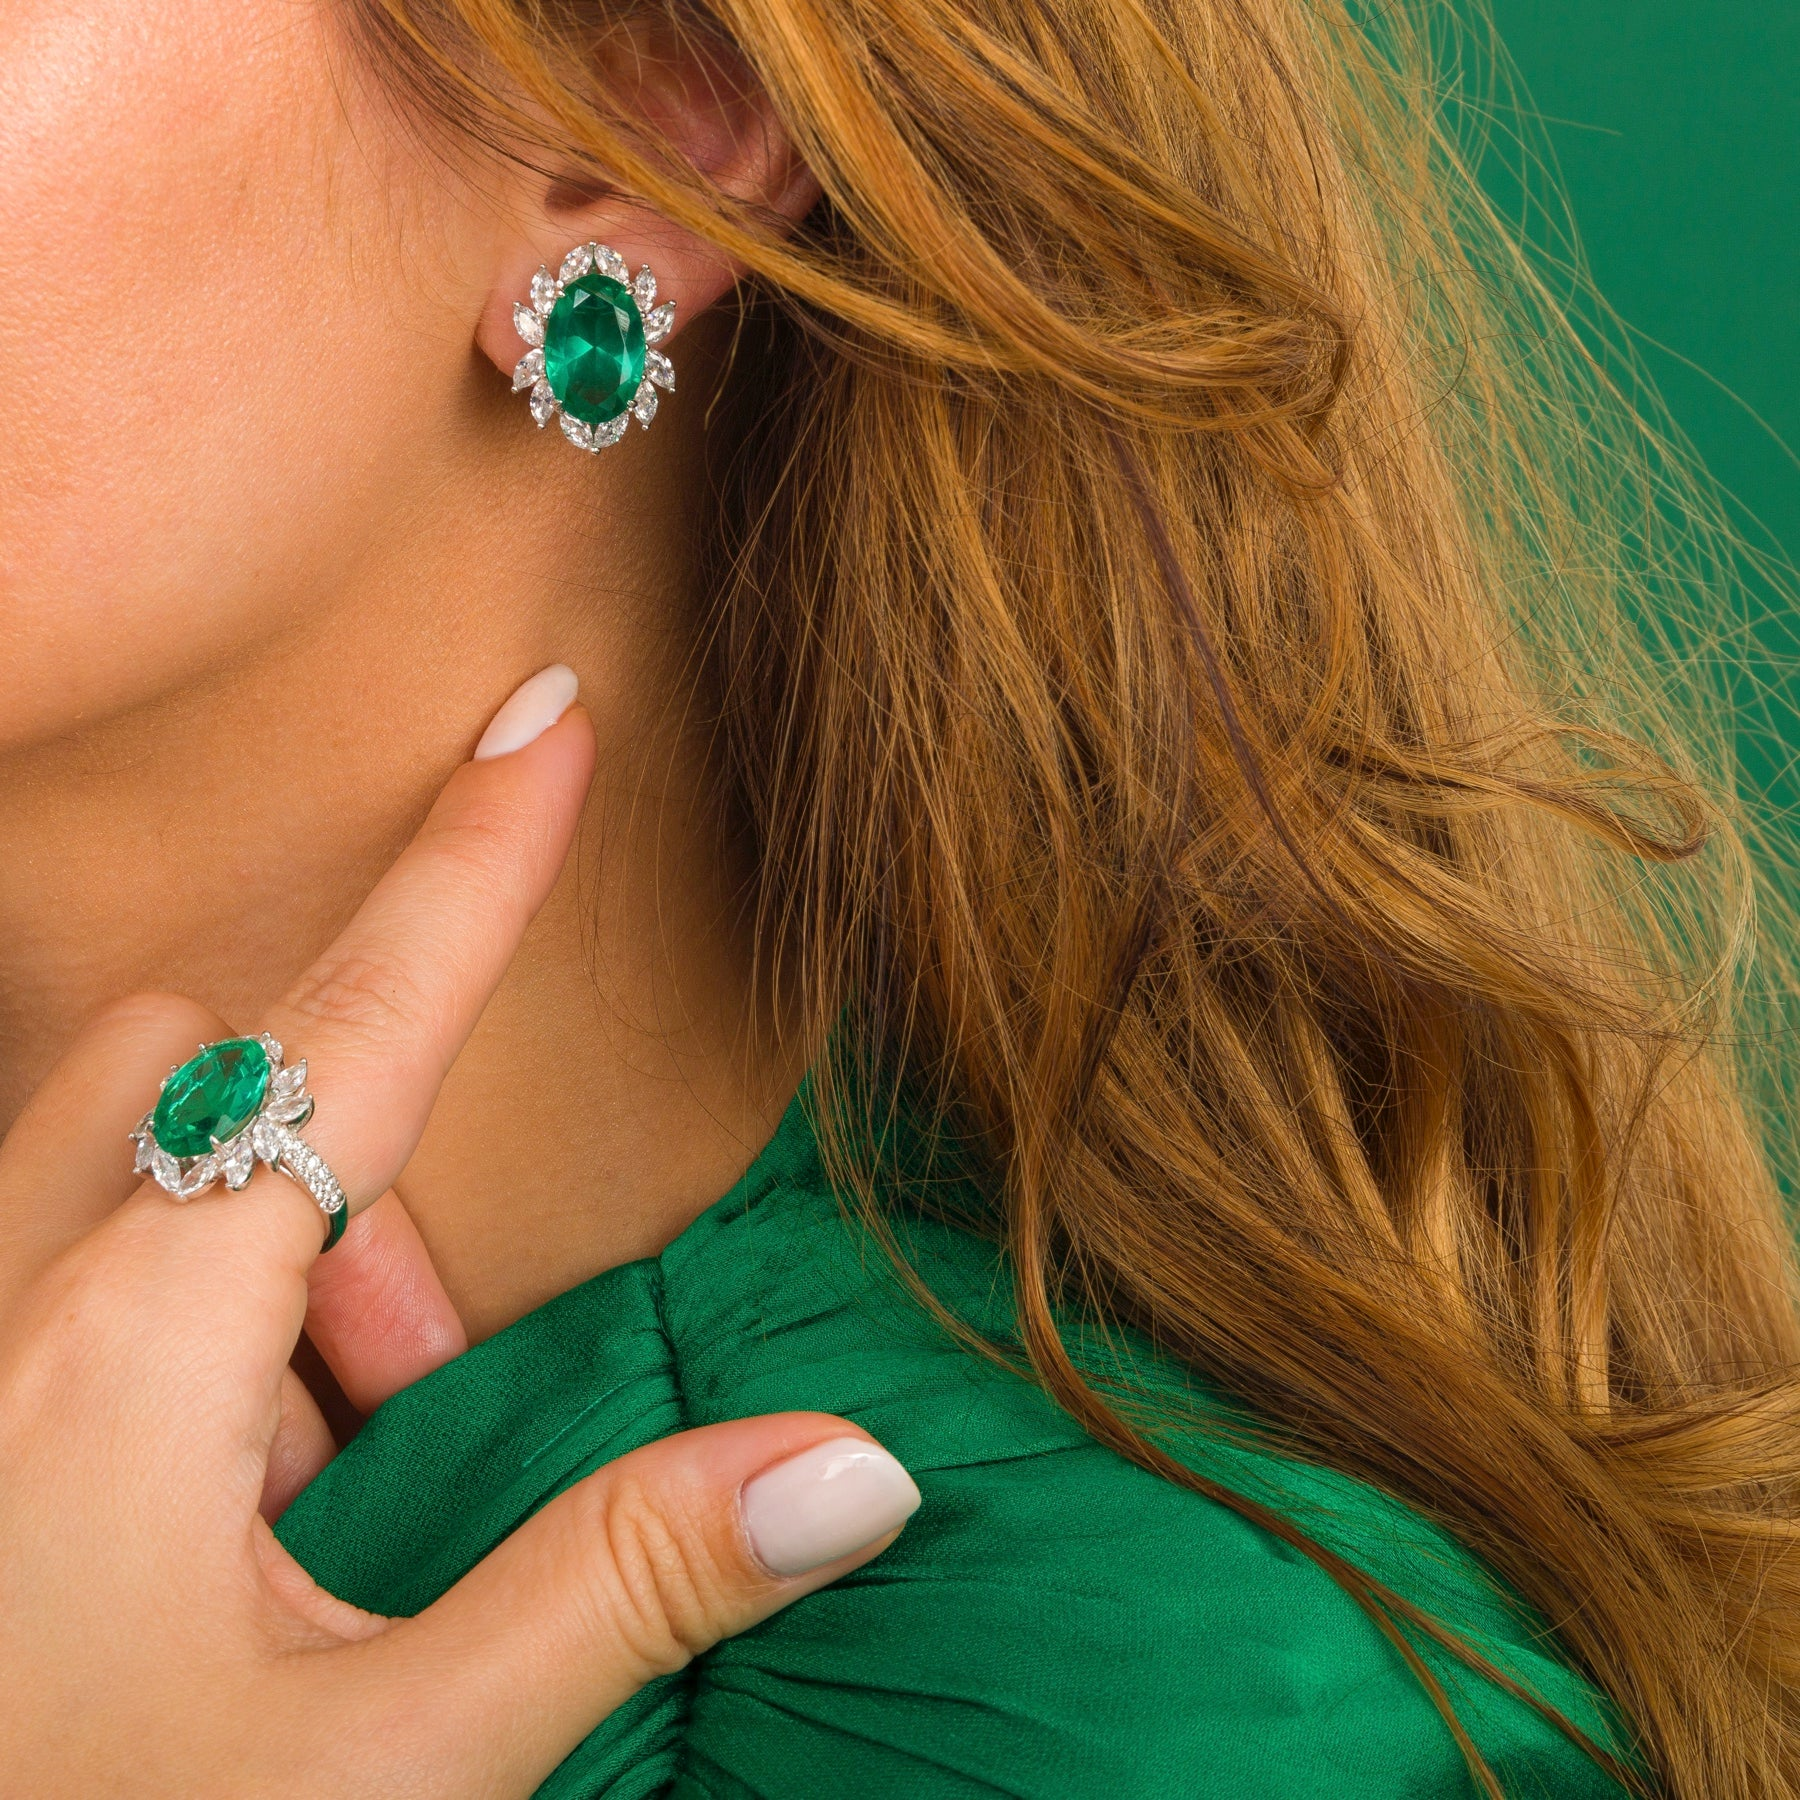 ROYAL SET earring and ring with emerald green stone